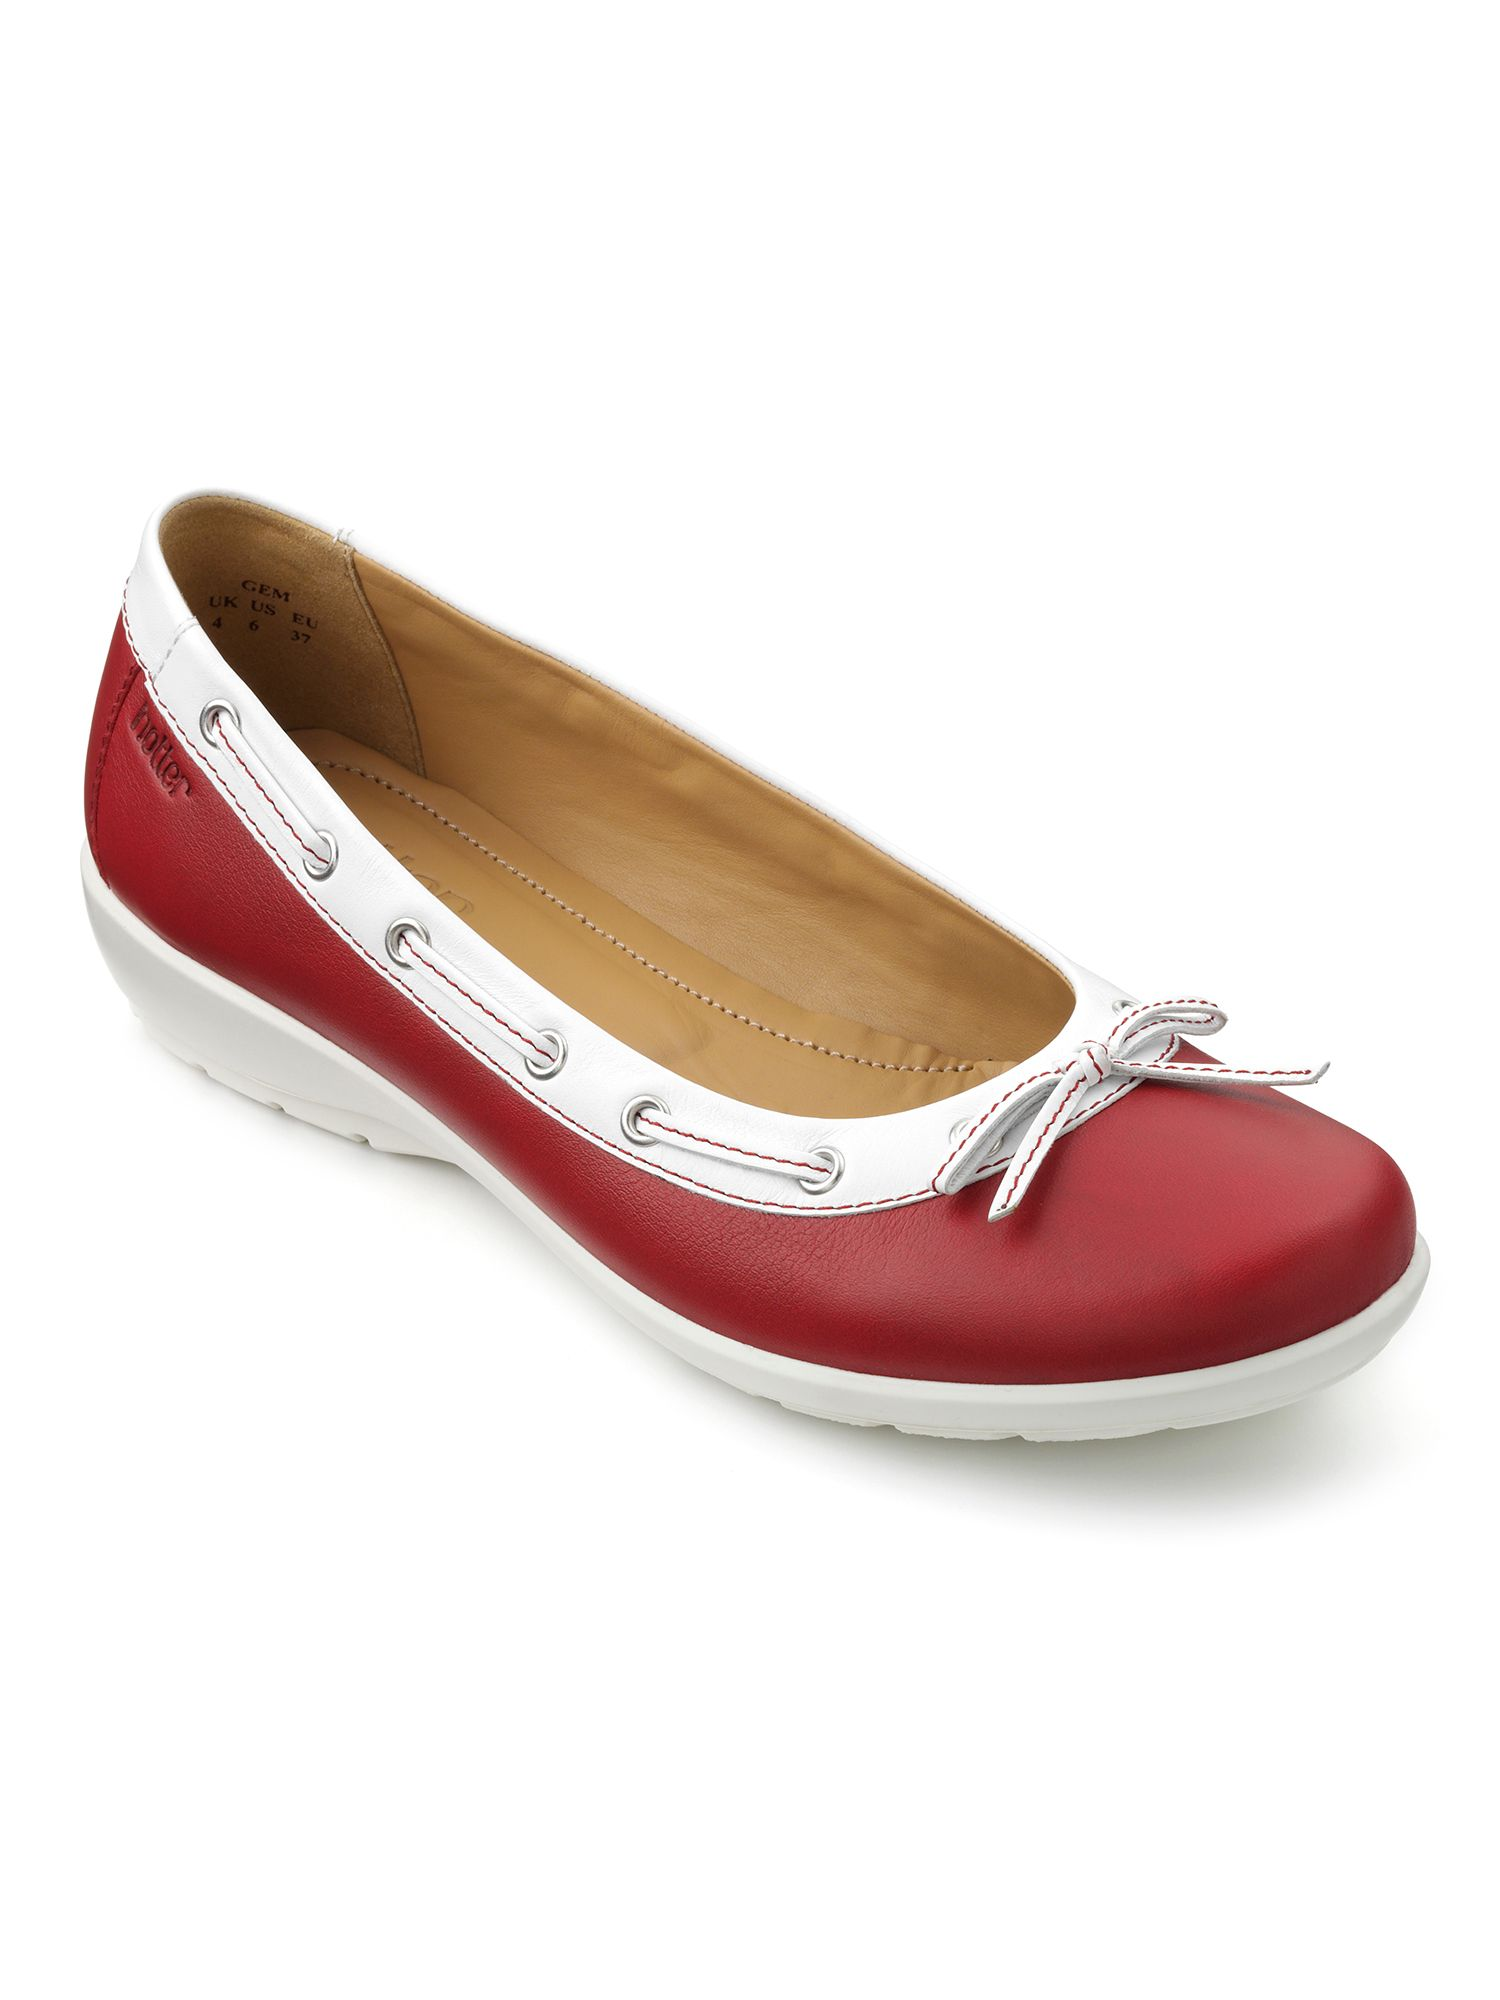 Hotter Gem Ballerina Style Shoes, Red